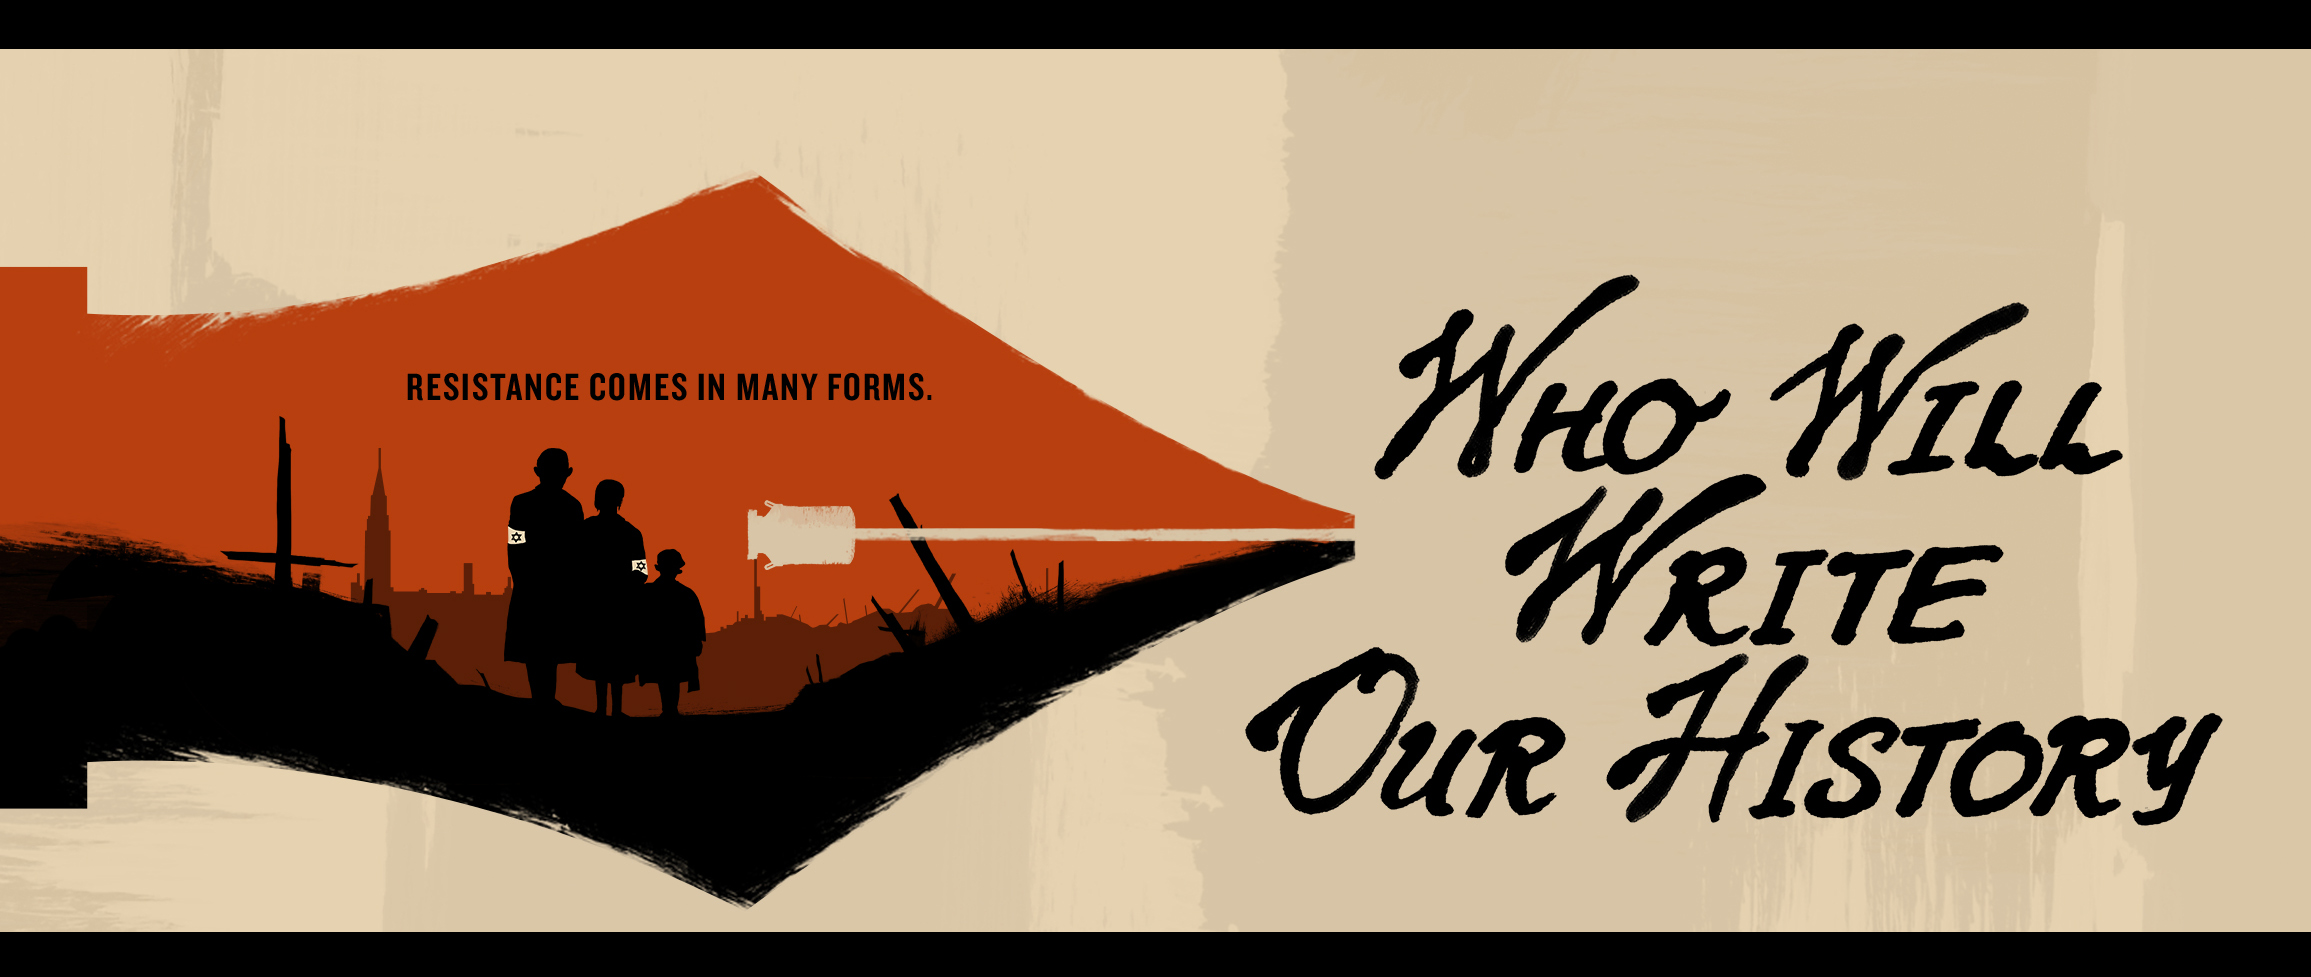 Who will write our history horizontal banner